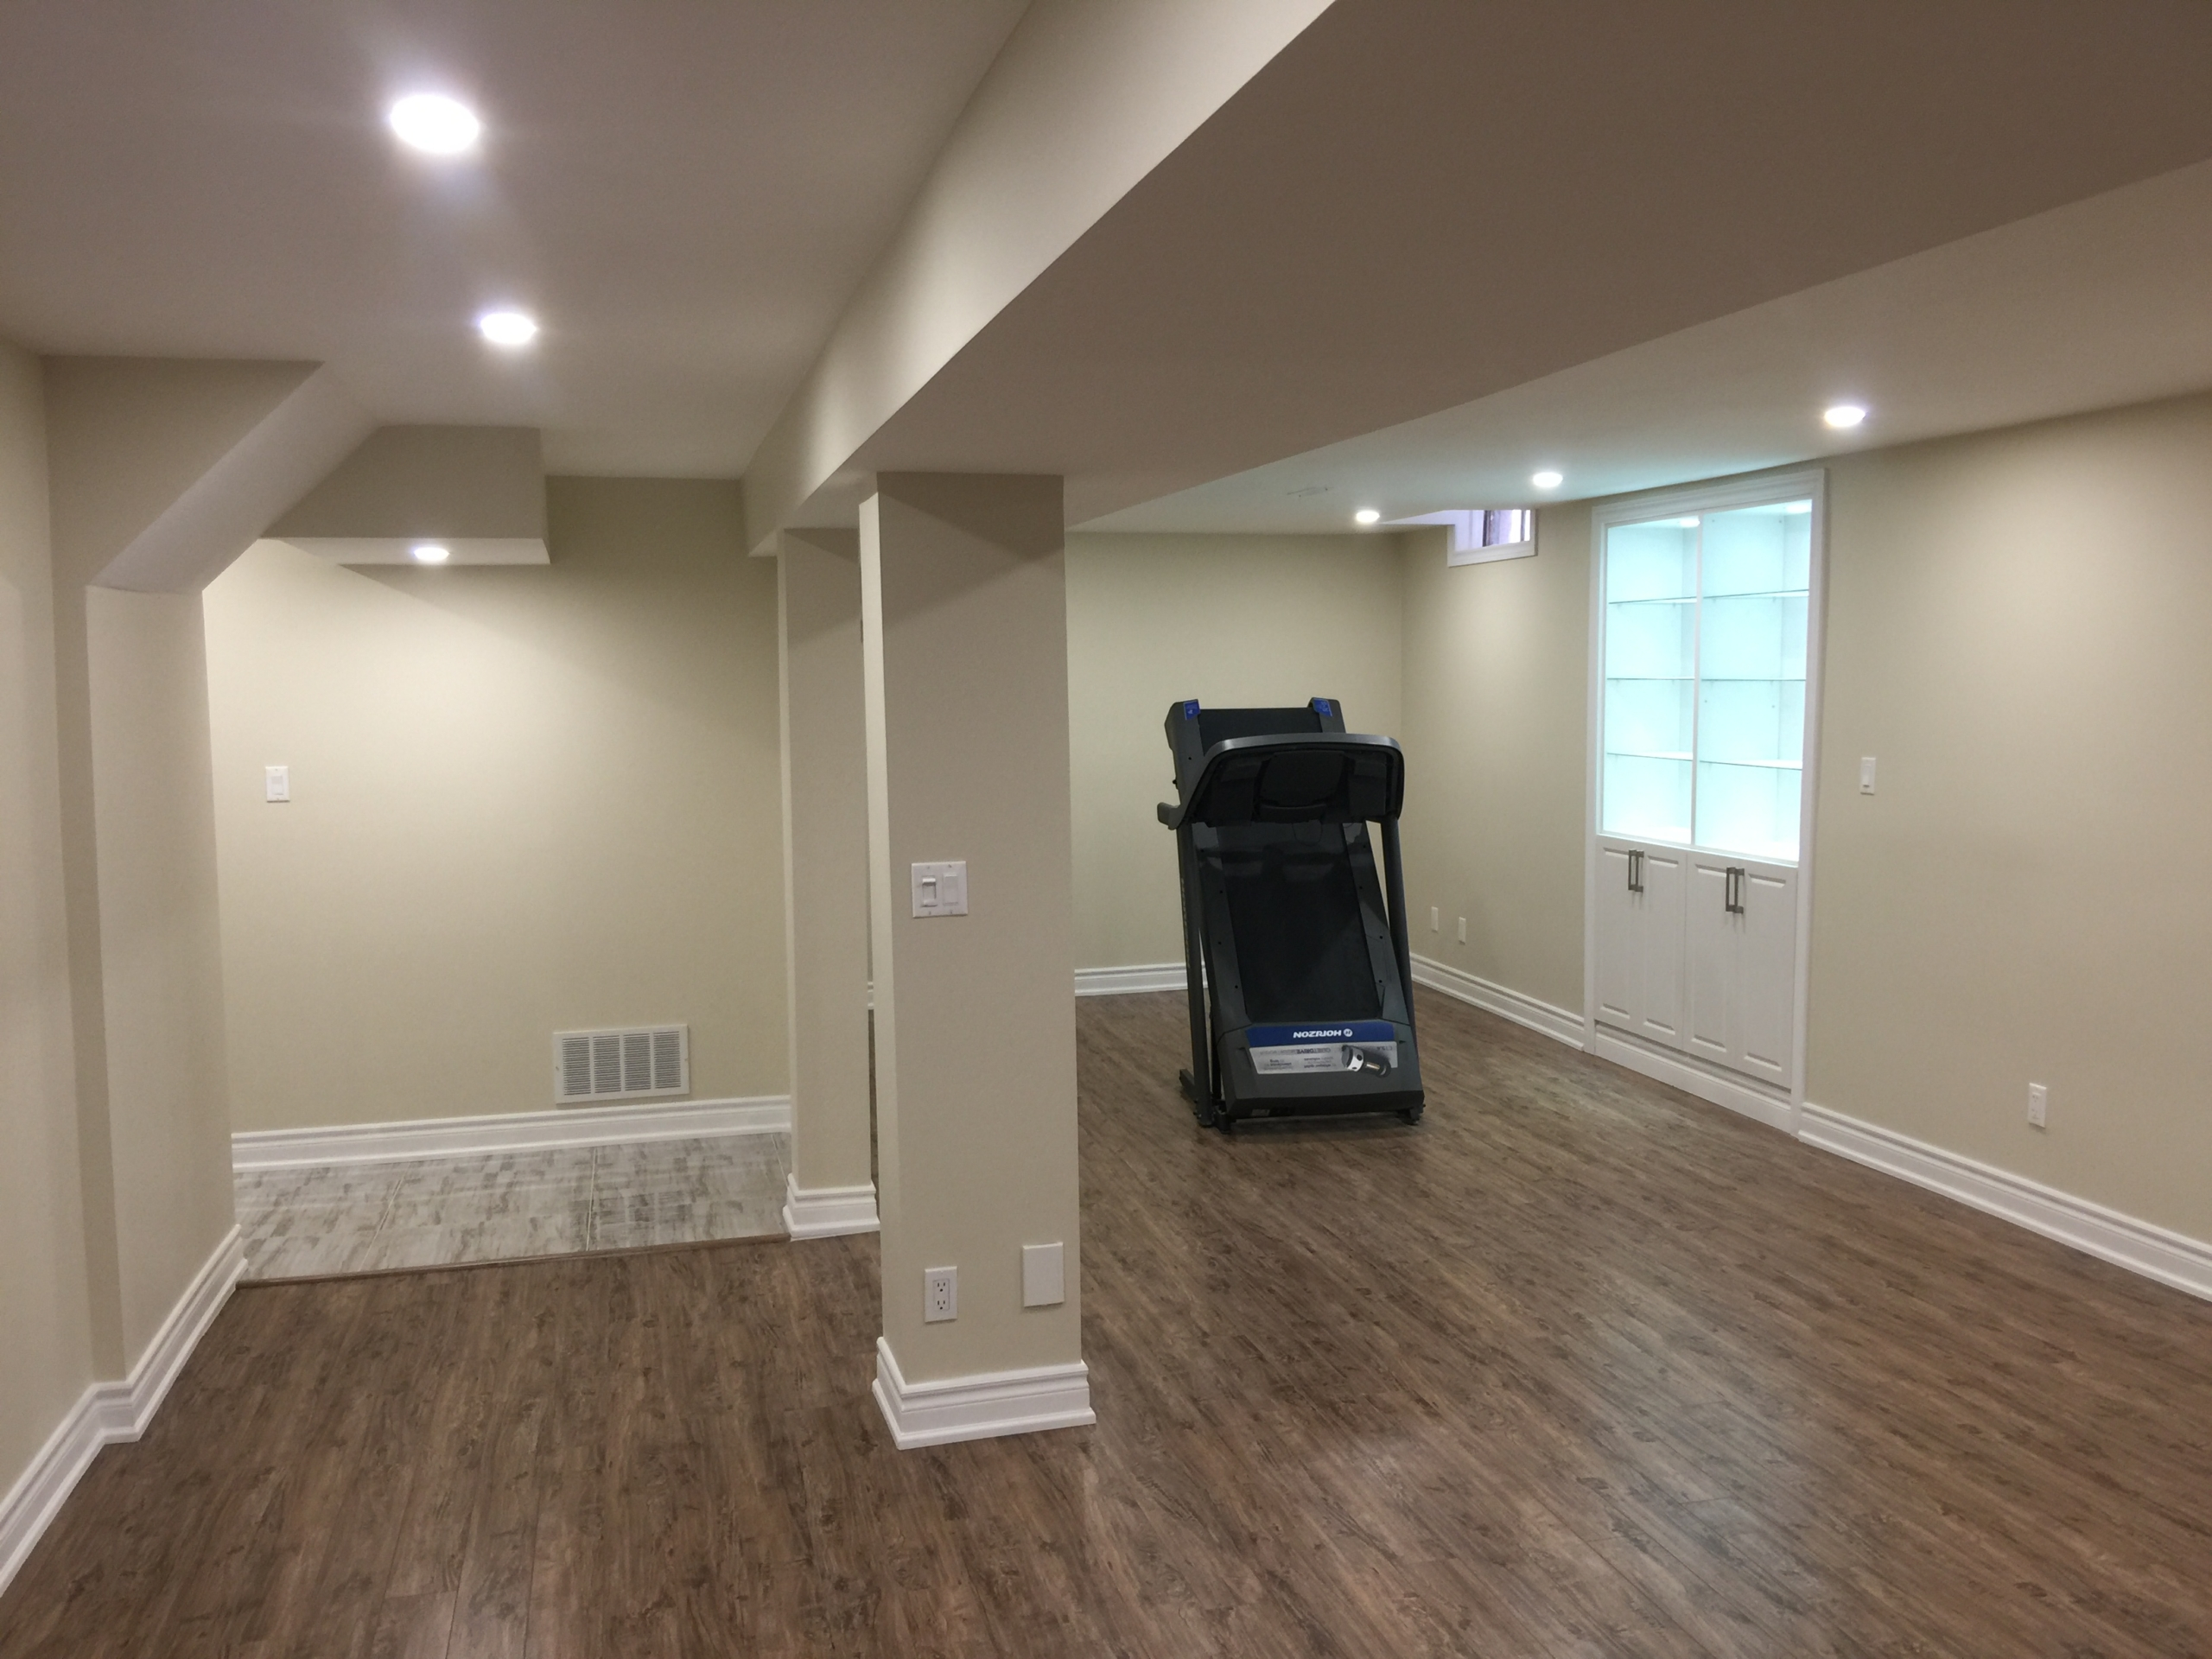 Basement Full Renovation (6)